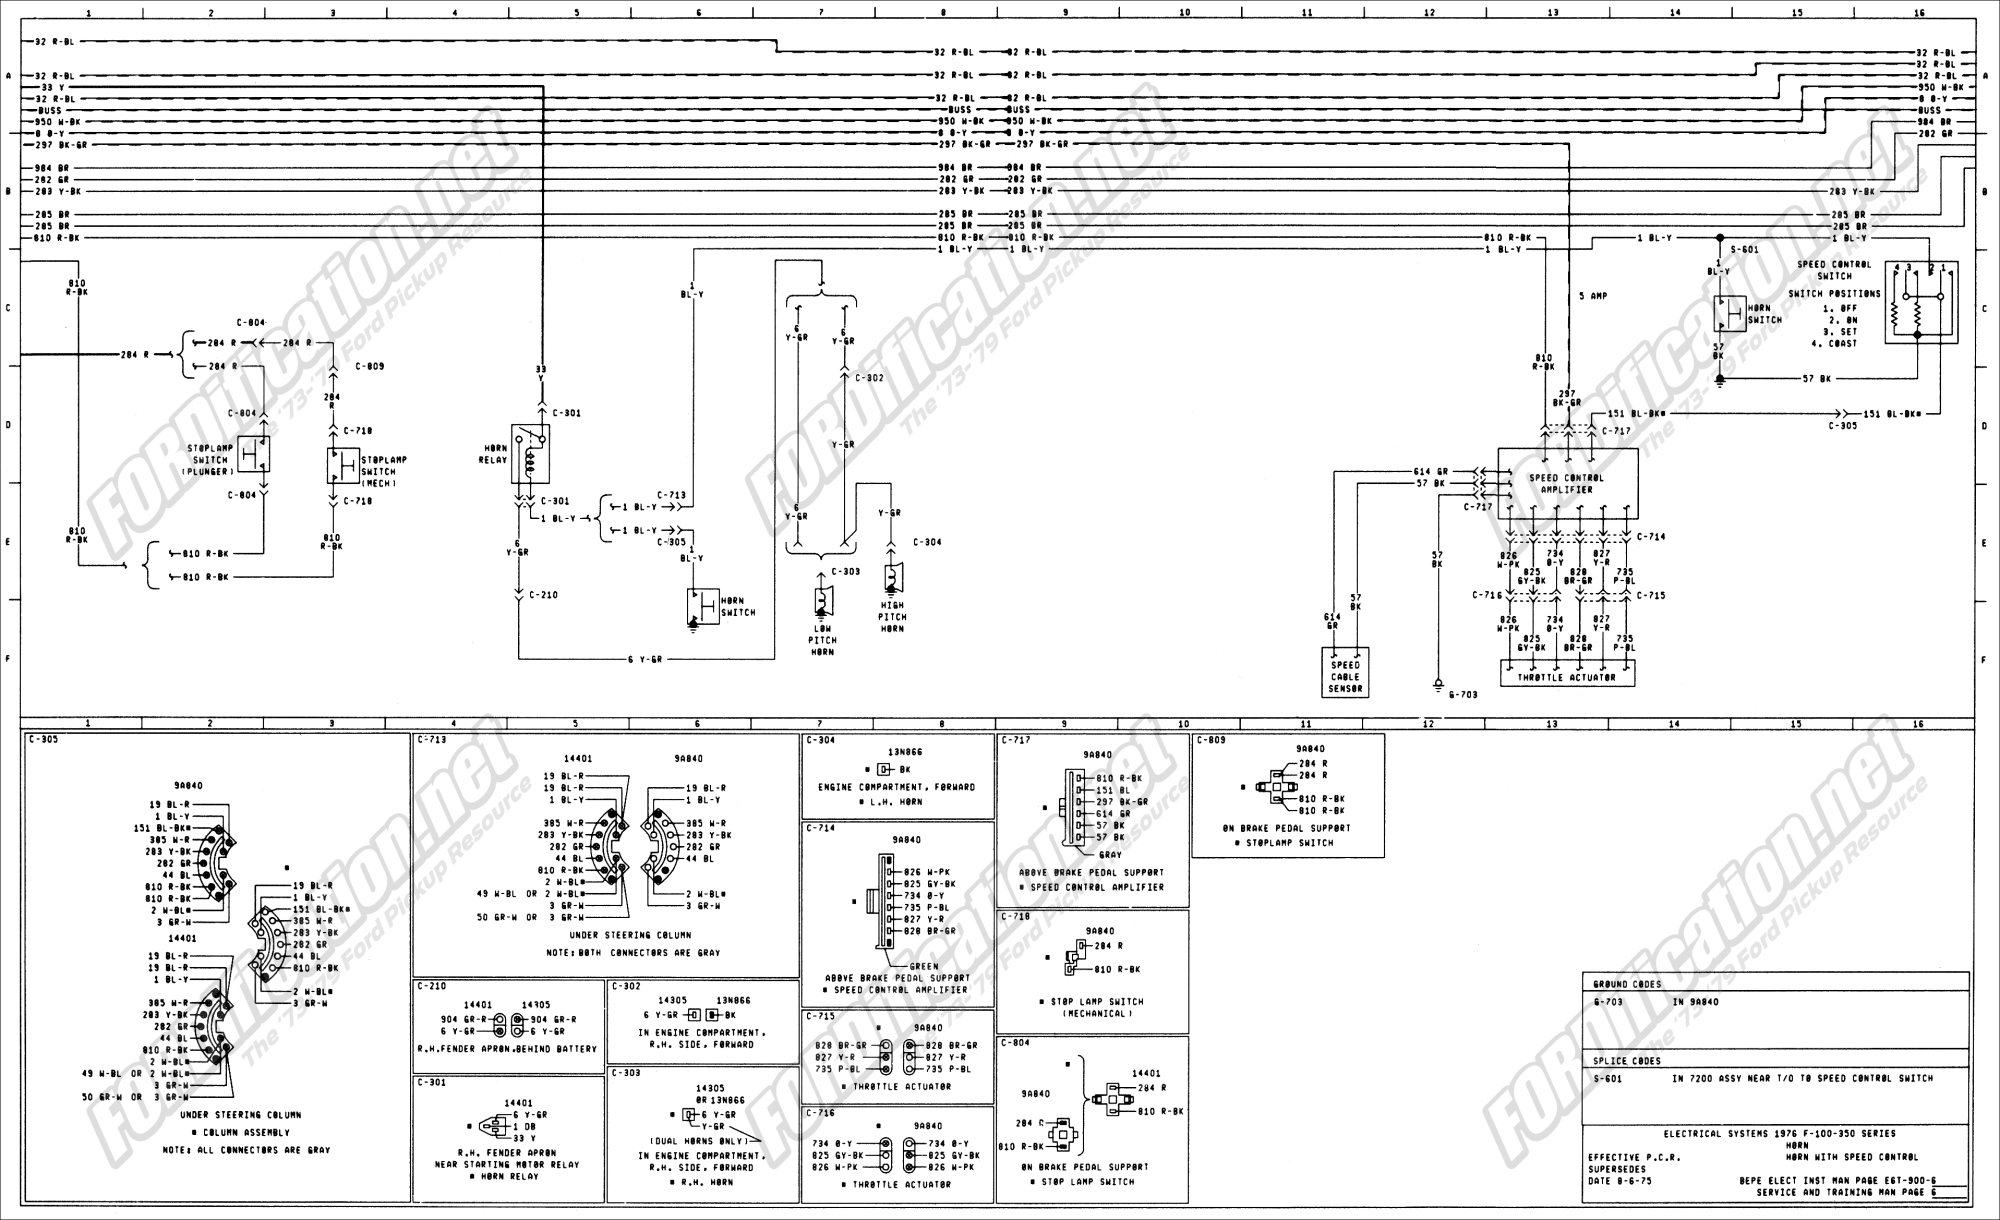 hight resolution of 1979 f150 wiper switch wiring diagram wiring diagram blogs 1996 ford f 150 engine diagram 1979 ford f 150 motor diagram